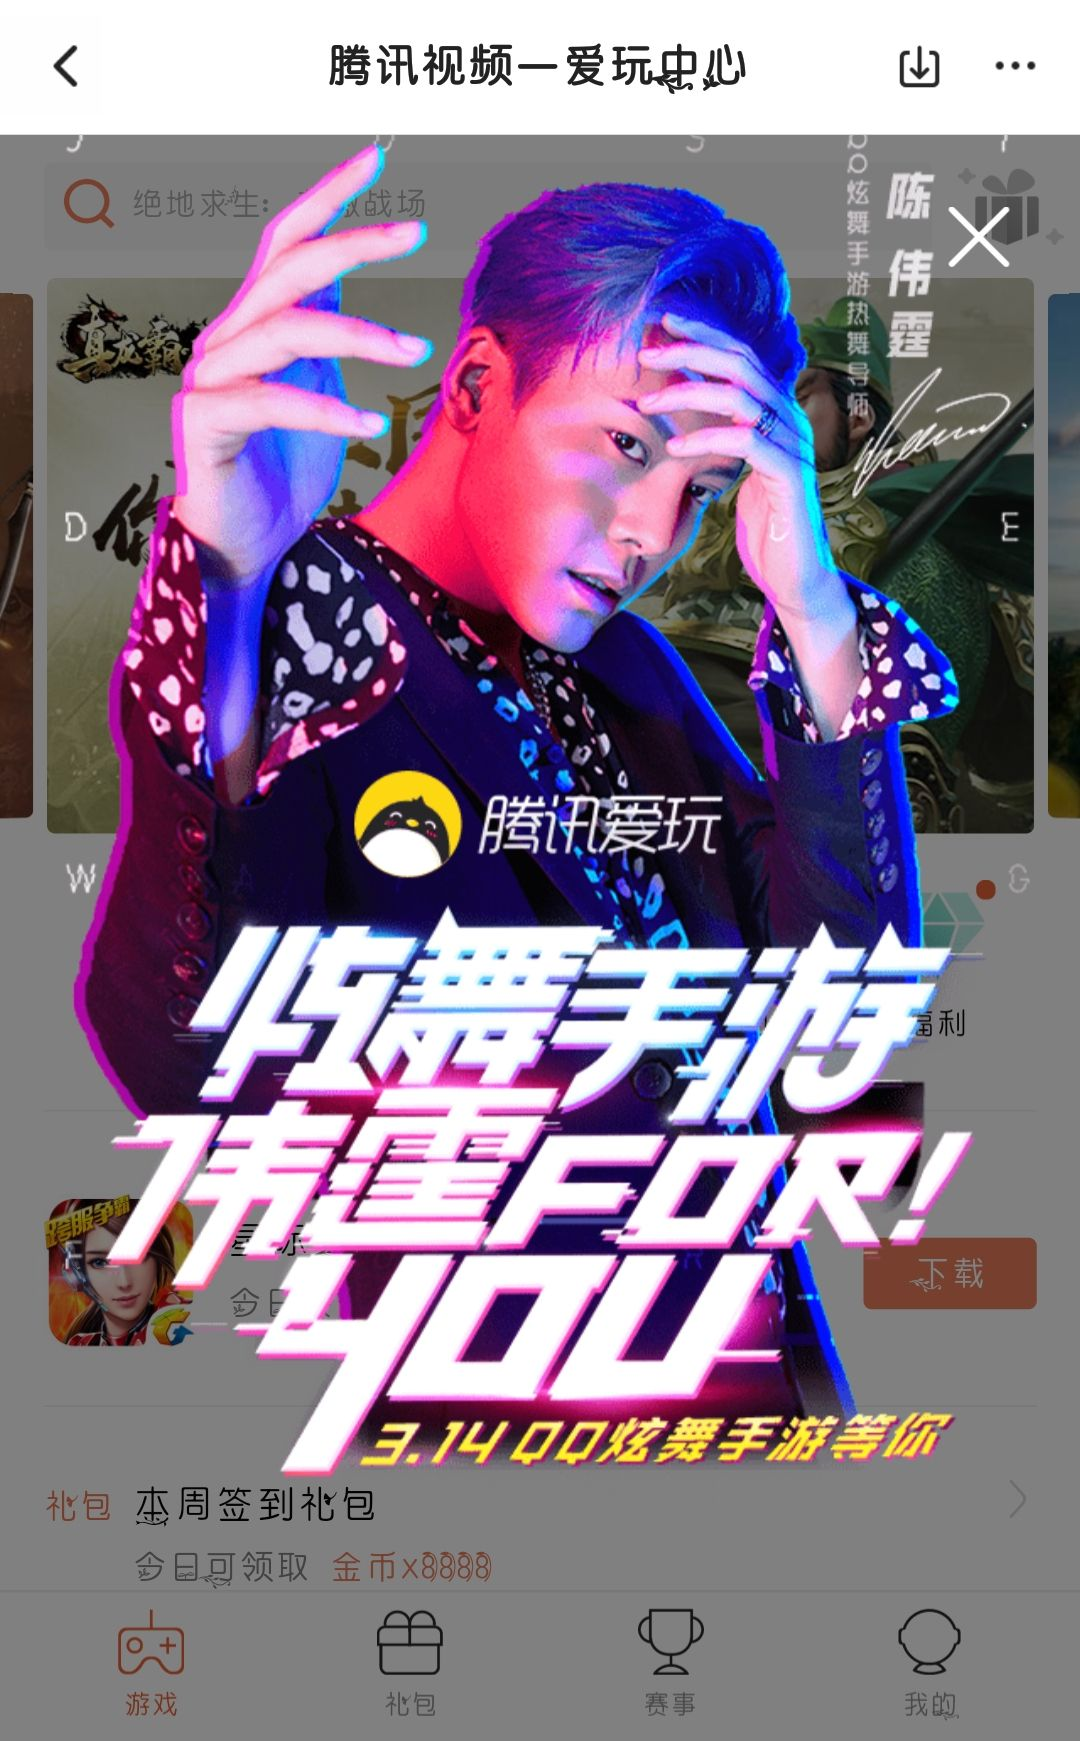 William Chan Tencent Qq Dance Mobile Game Pop Up Ad In Tencent Iwan App Mar 7 2018 Cr 小清新李小苗 陳偉霆 陈伟霆 ウィリアム チャン Dancer Tencent Qq Movie Posters